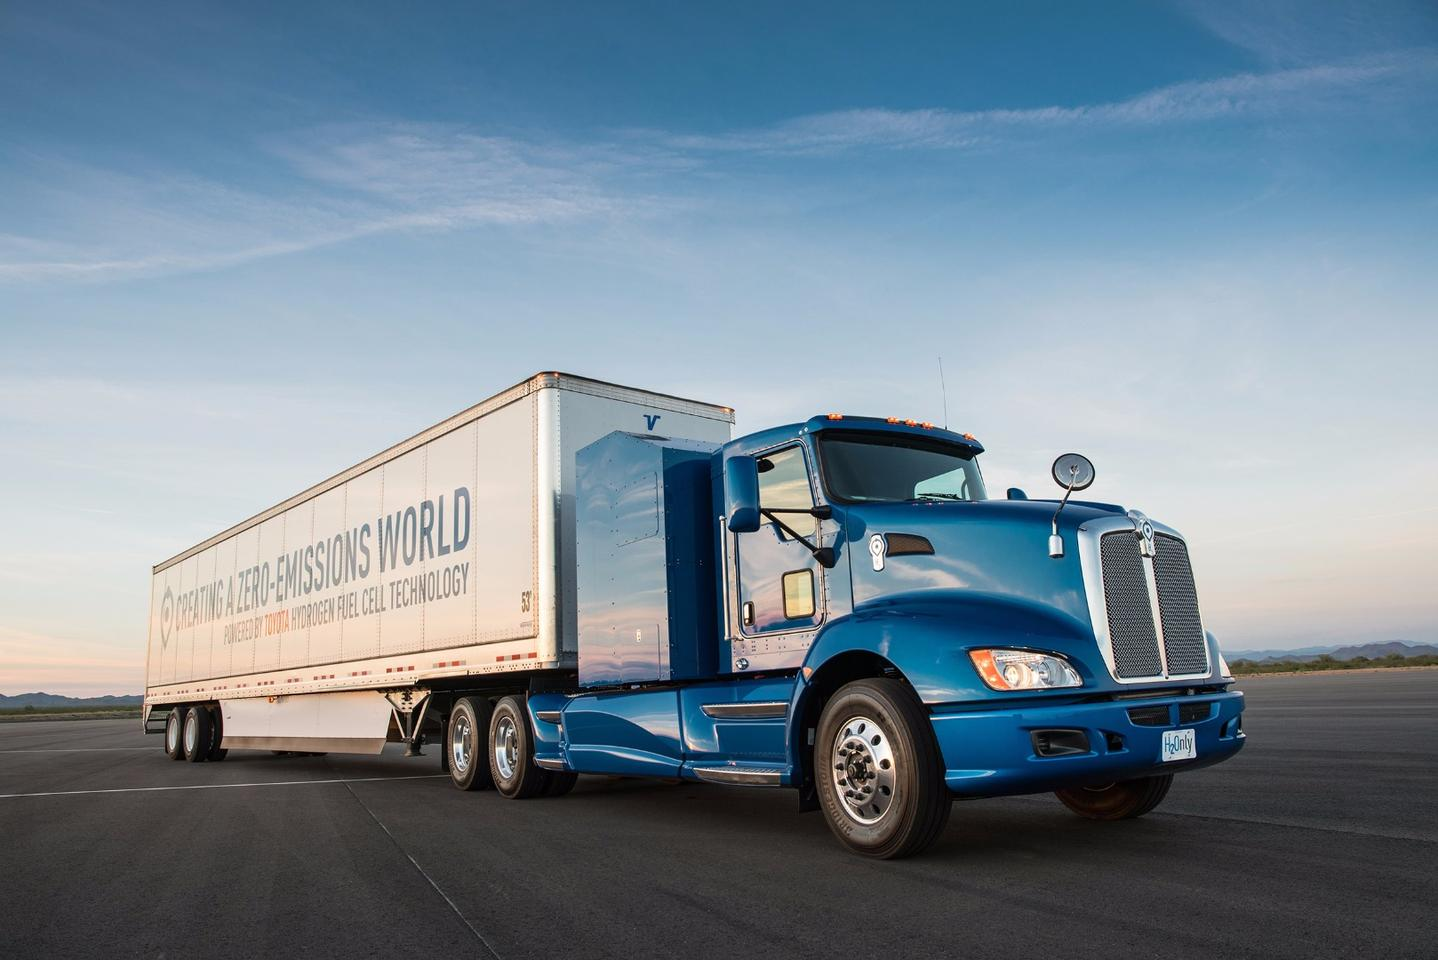 Toyota has taken a semi-truck rig and replaced its diesel powerplant with hydrogen fuel cells and electric motors as part of a new feasibility study